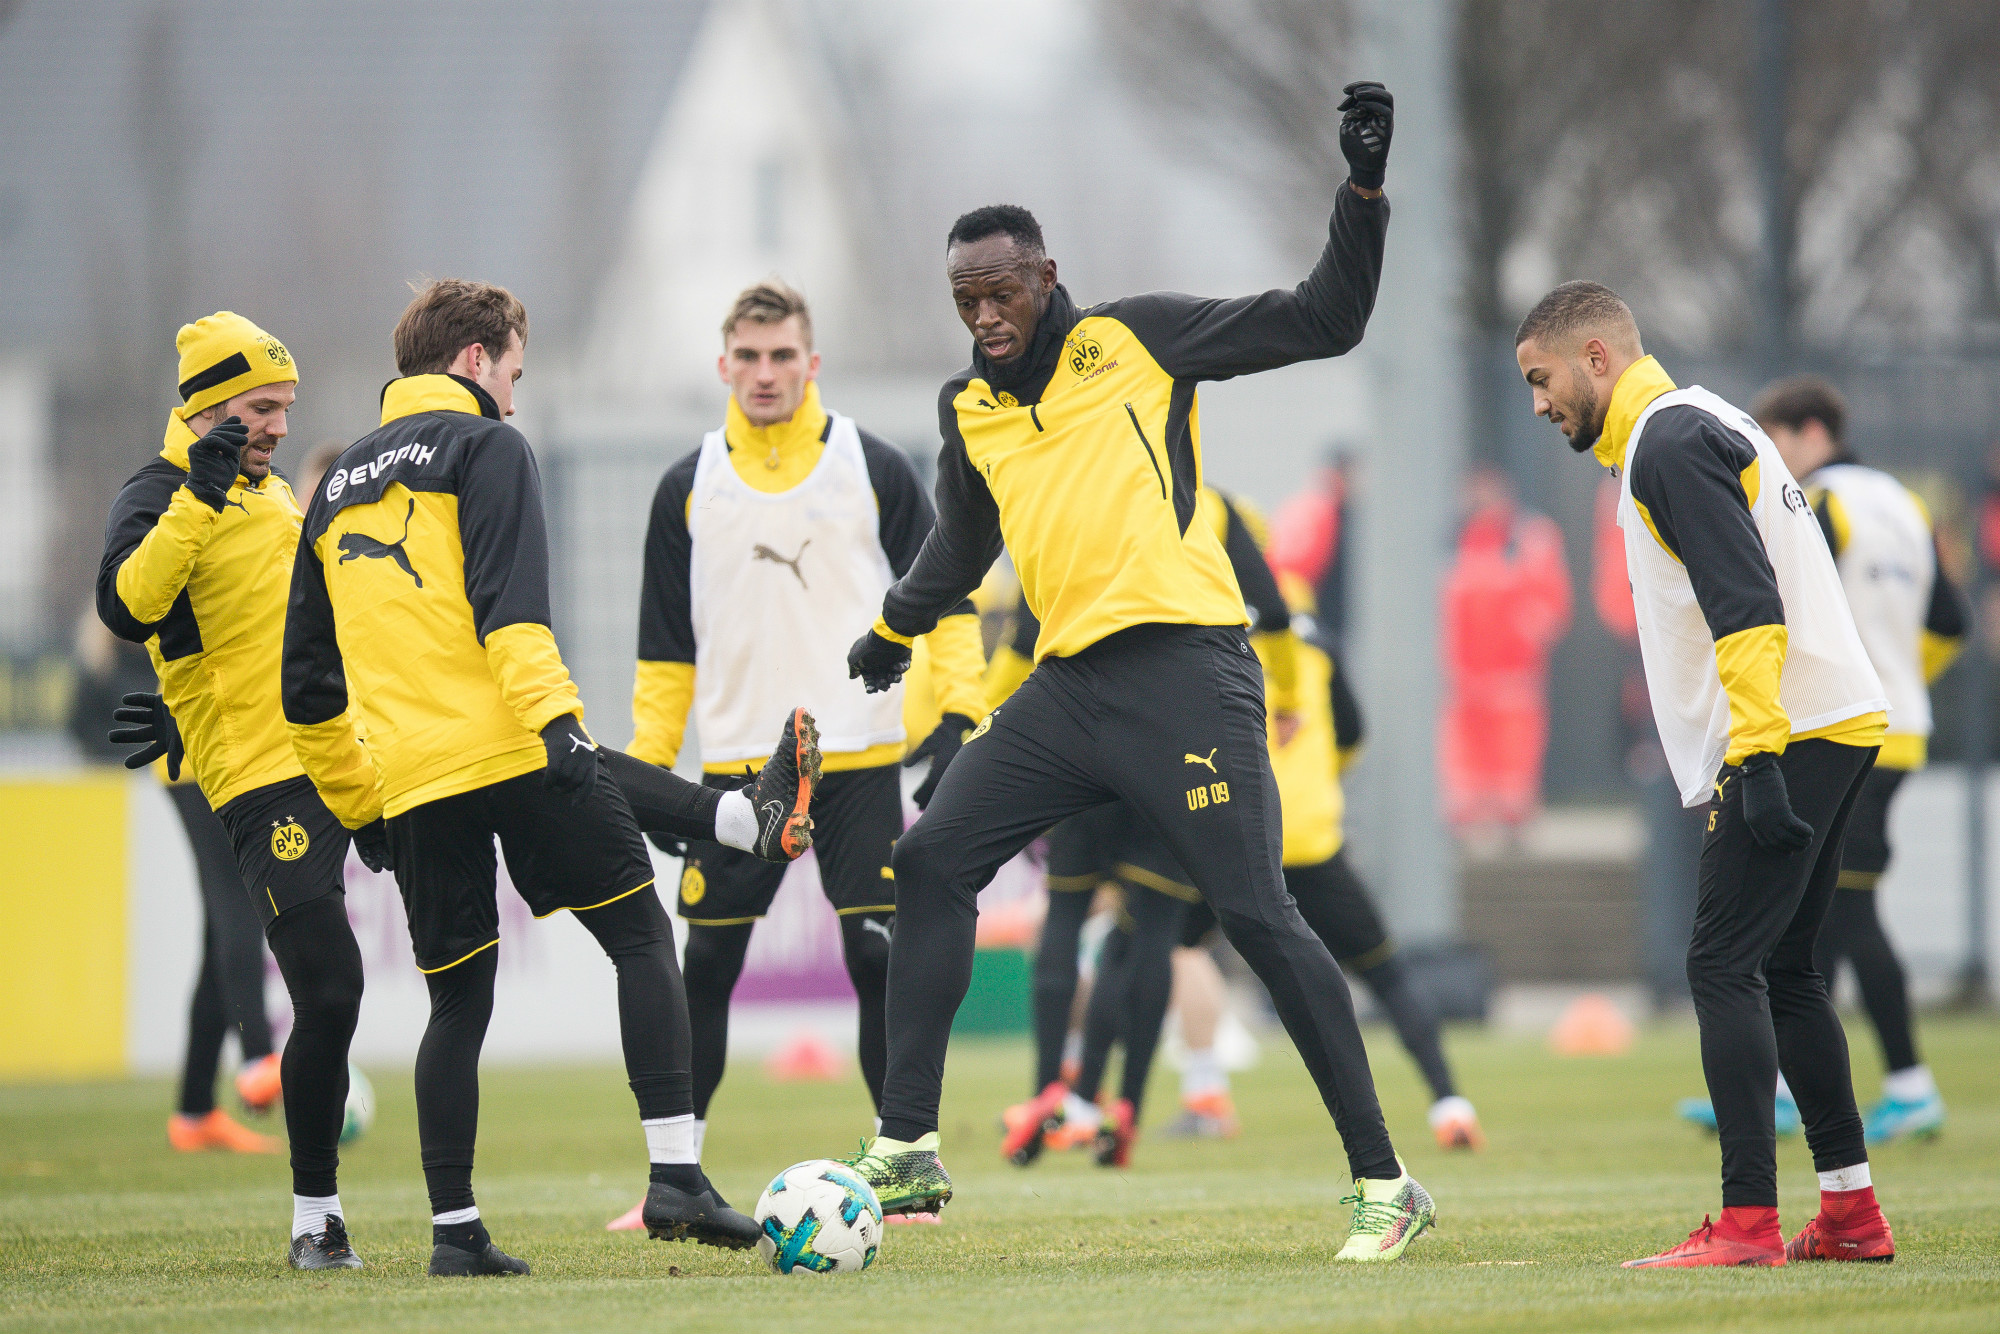 Bolt tackles German midfielder Mario Gotze while training with Borussia Dortmund